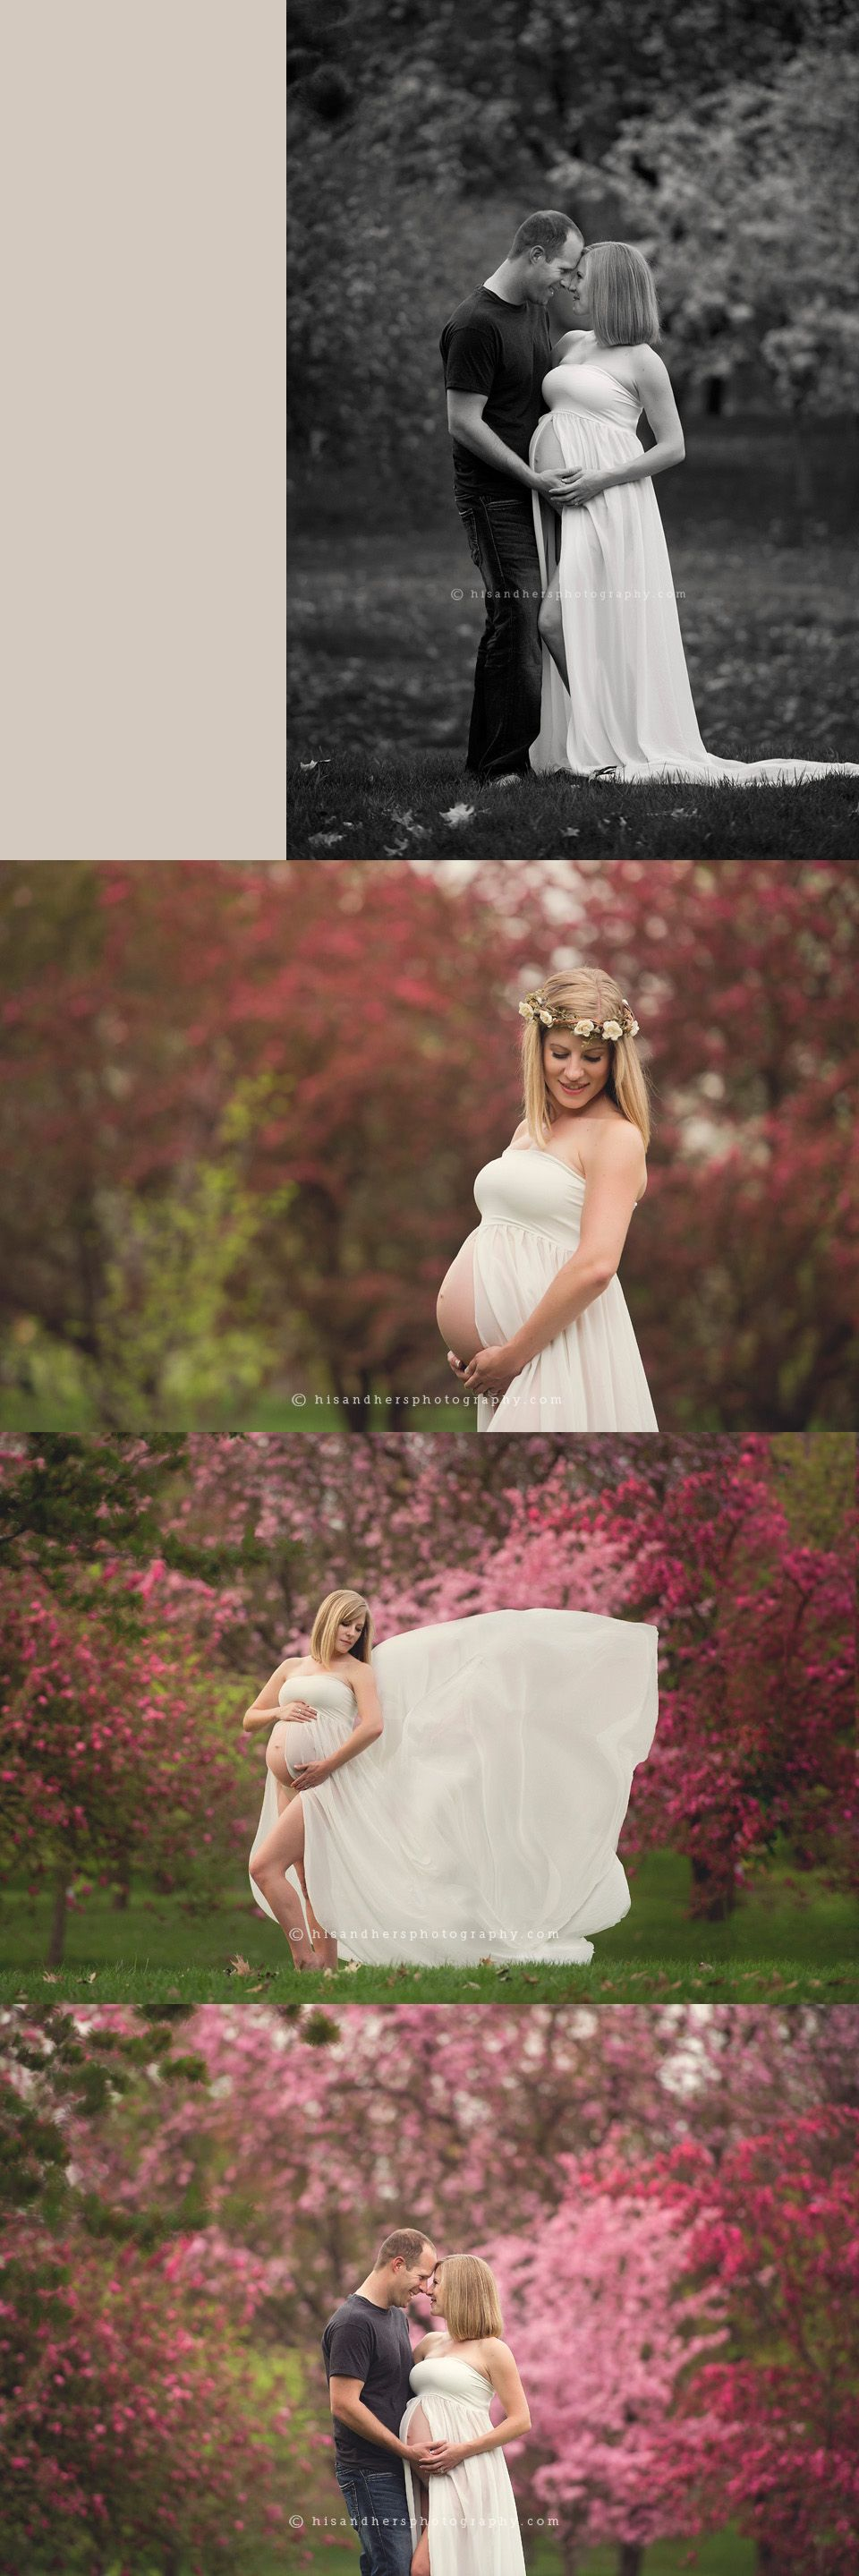 Maternity | Waiting for baby